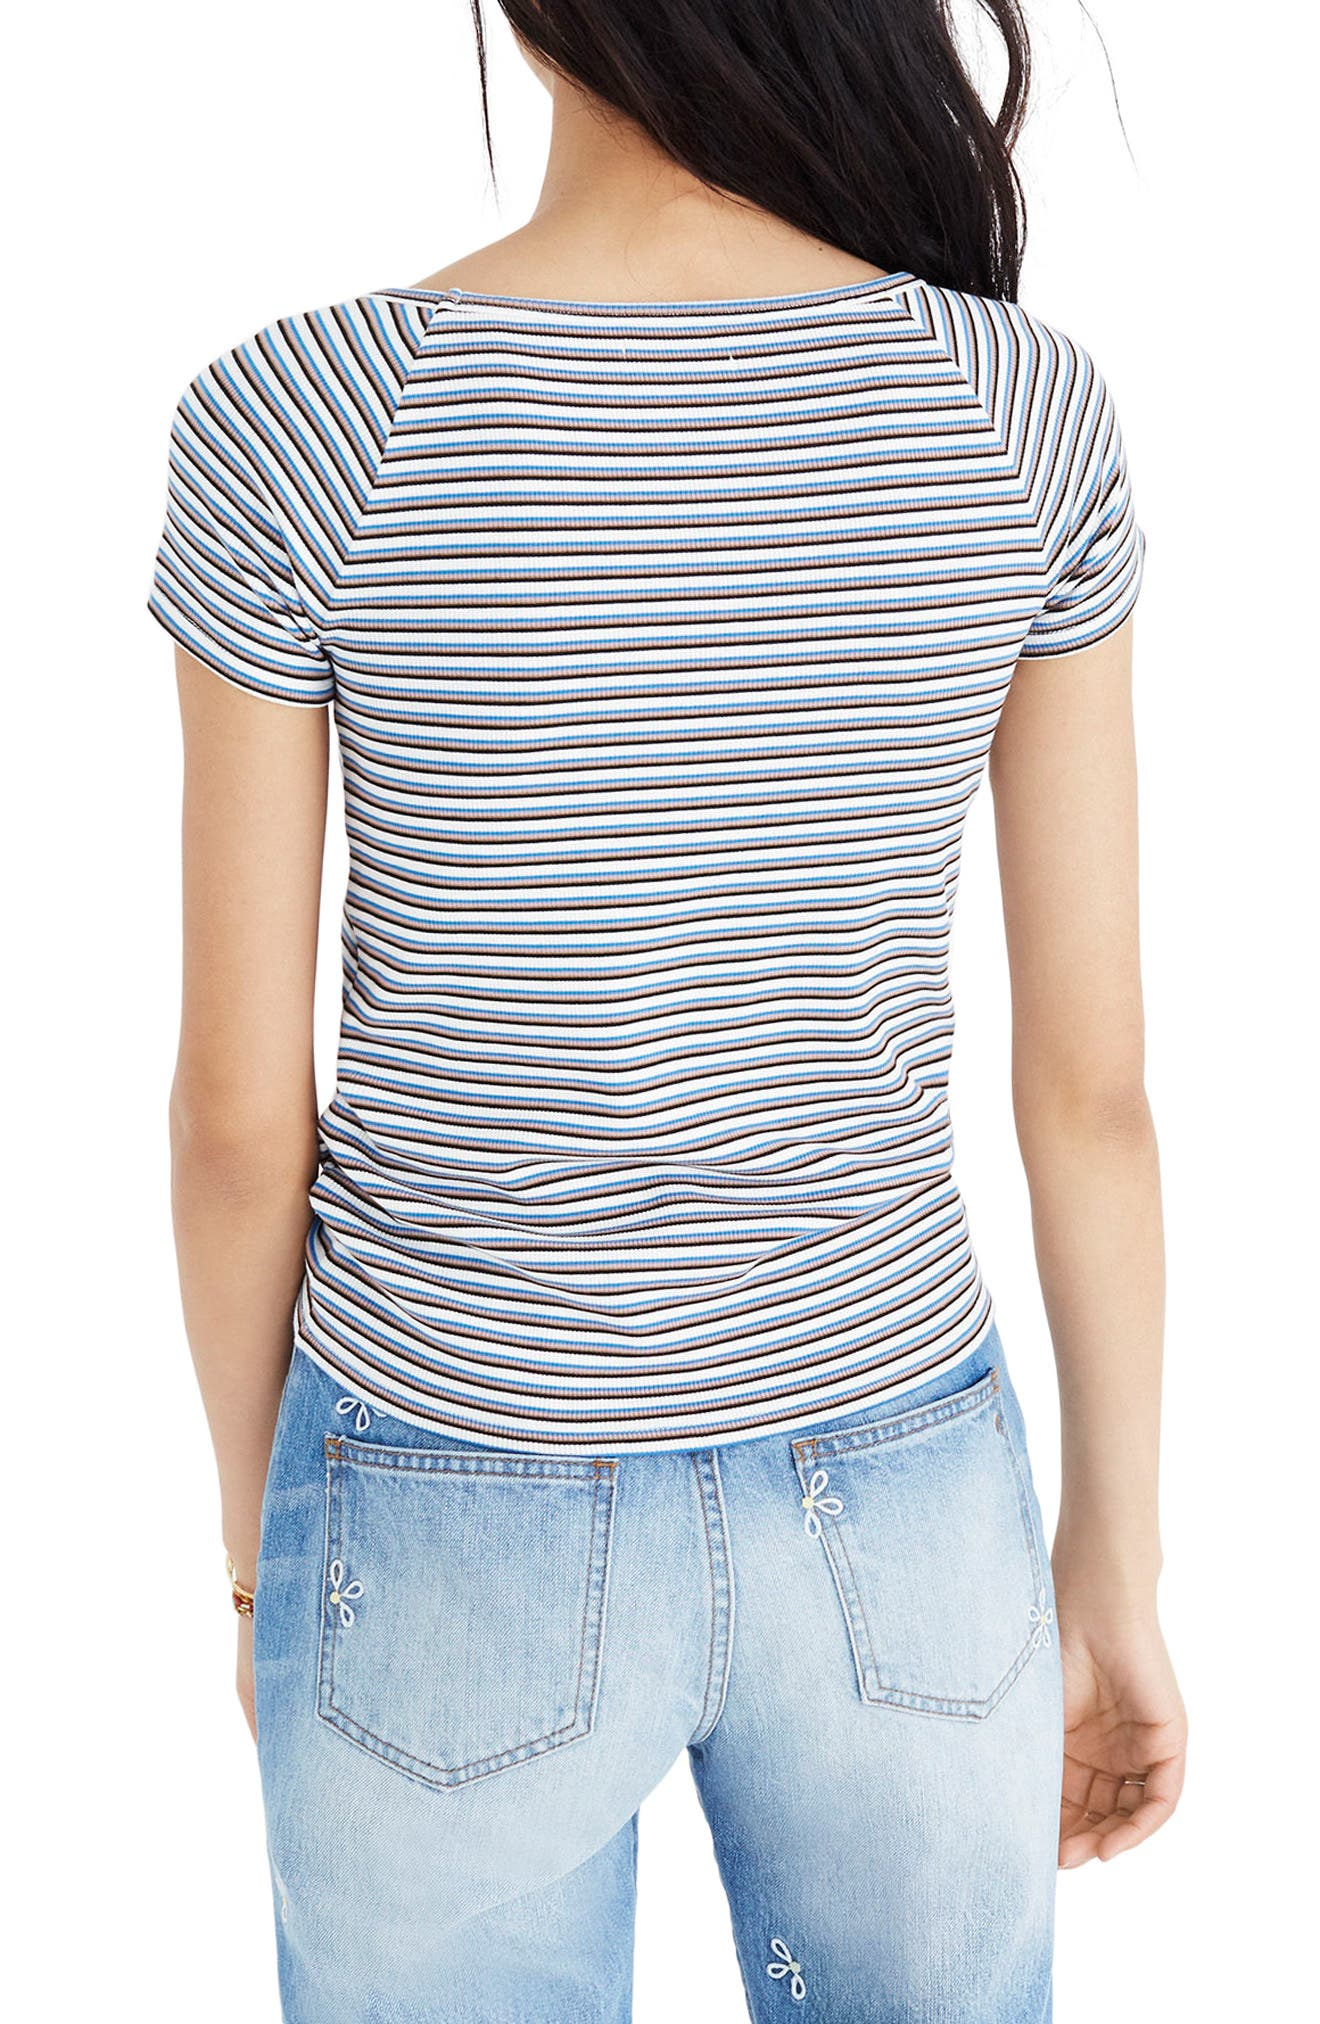 Canal Stripe Top,                         Main,                         color, 400